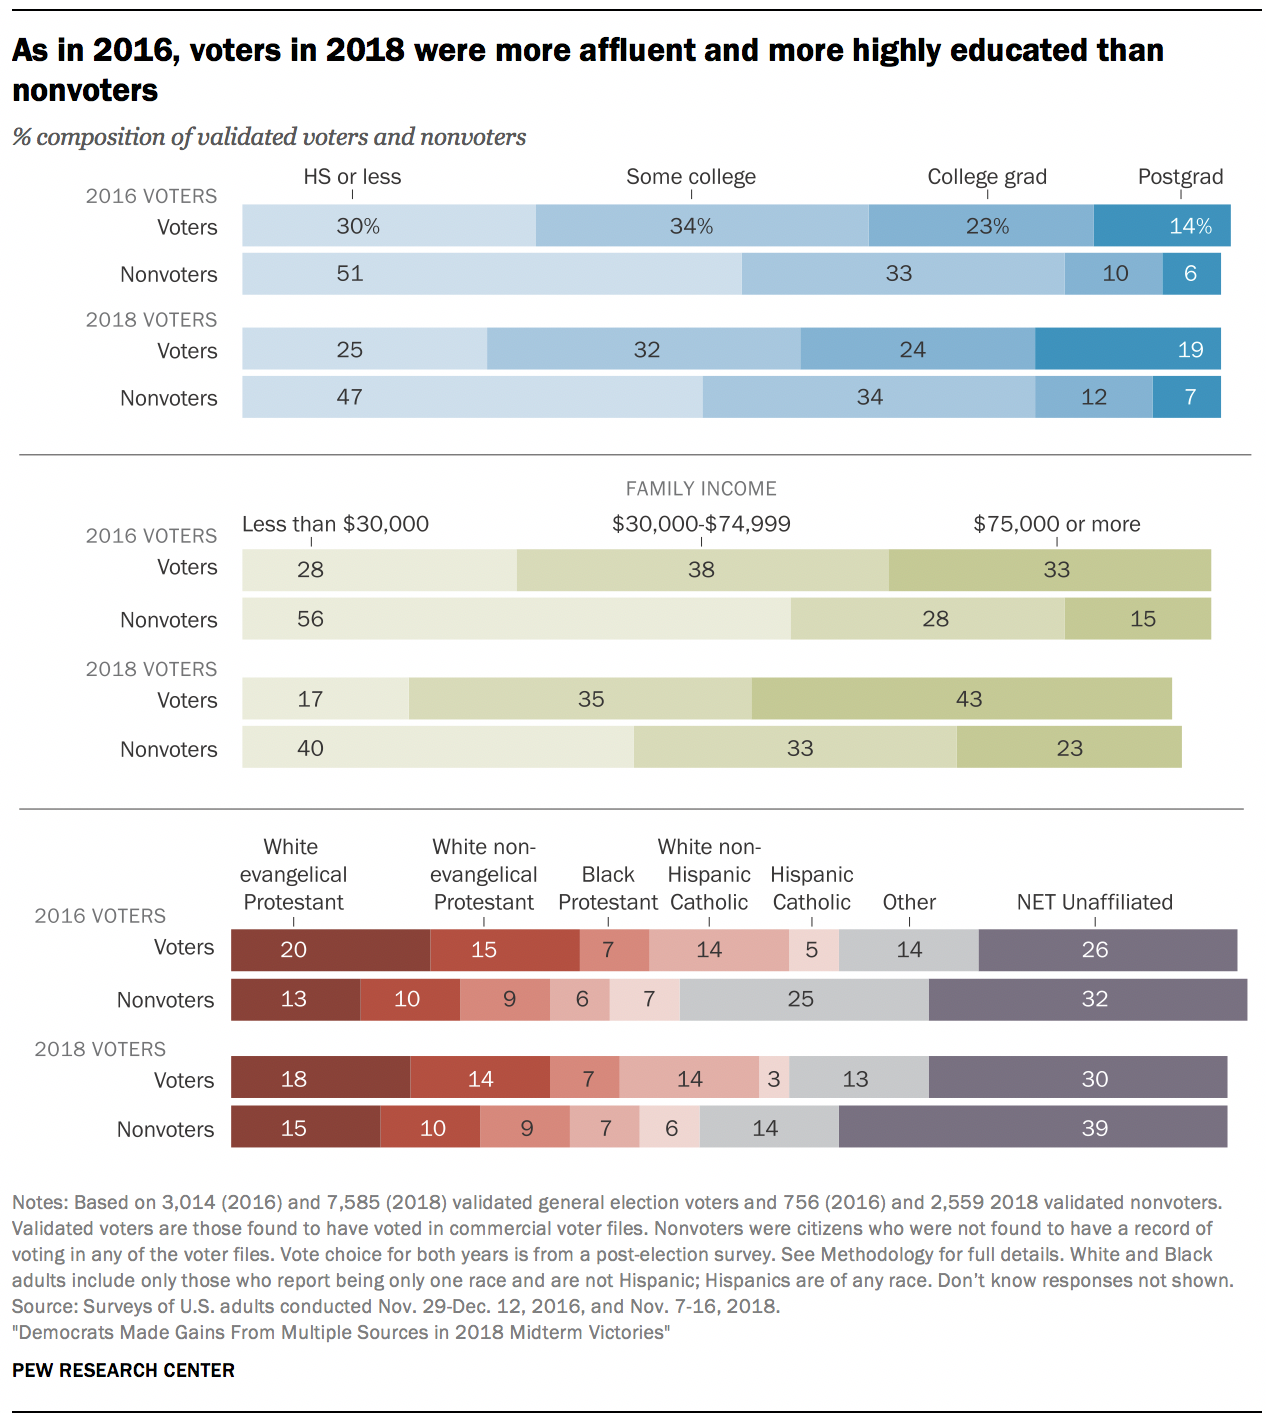 As in 2016, voters in 2018 were more affluent and more highly educated than nonvoters